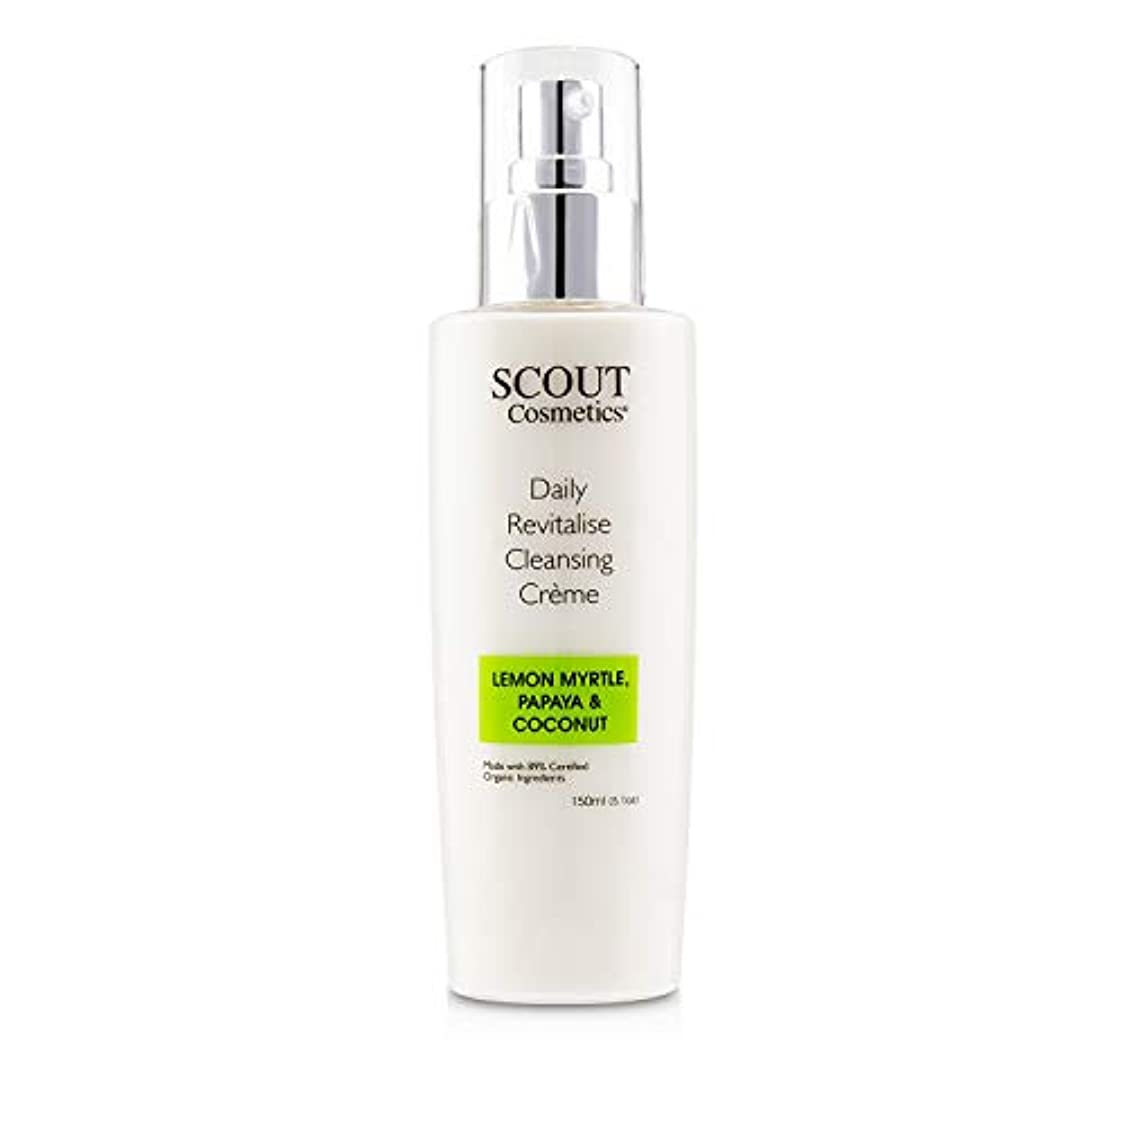 前に悪質な主観的SCOUT Cosmetics Daily Revitalise Cleansing Creme with Lemon Myrtle, Papaya & Coconut 150ml/5.1oz並行輸入品